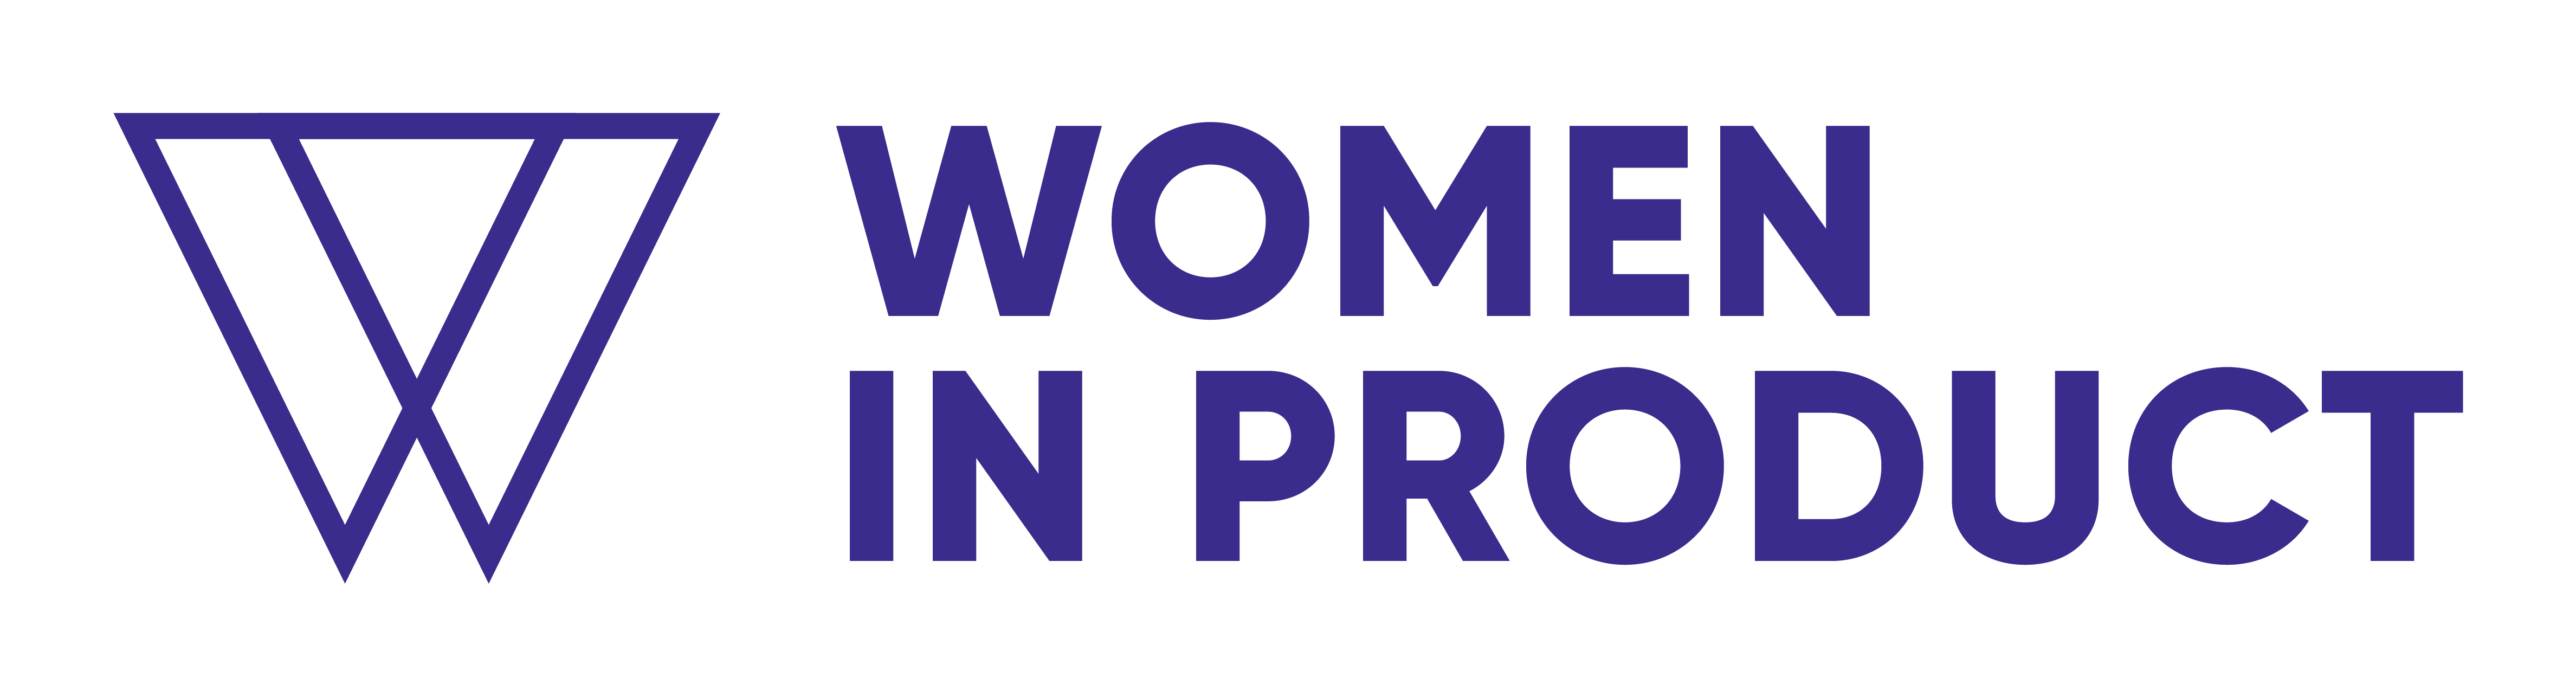 Women in Product logo